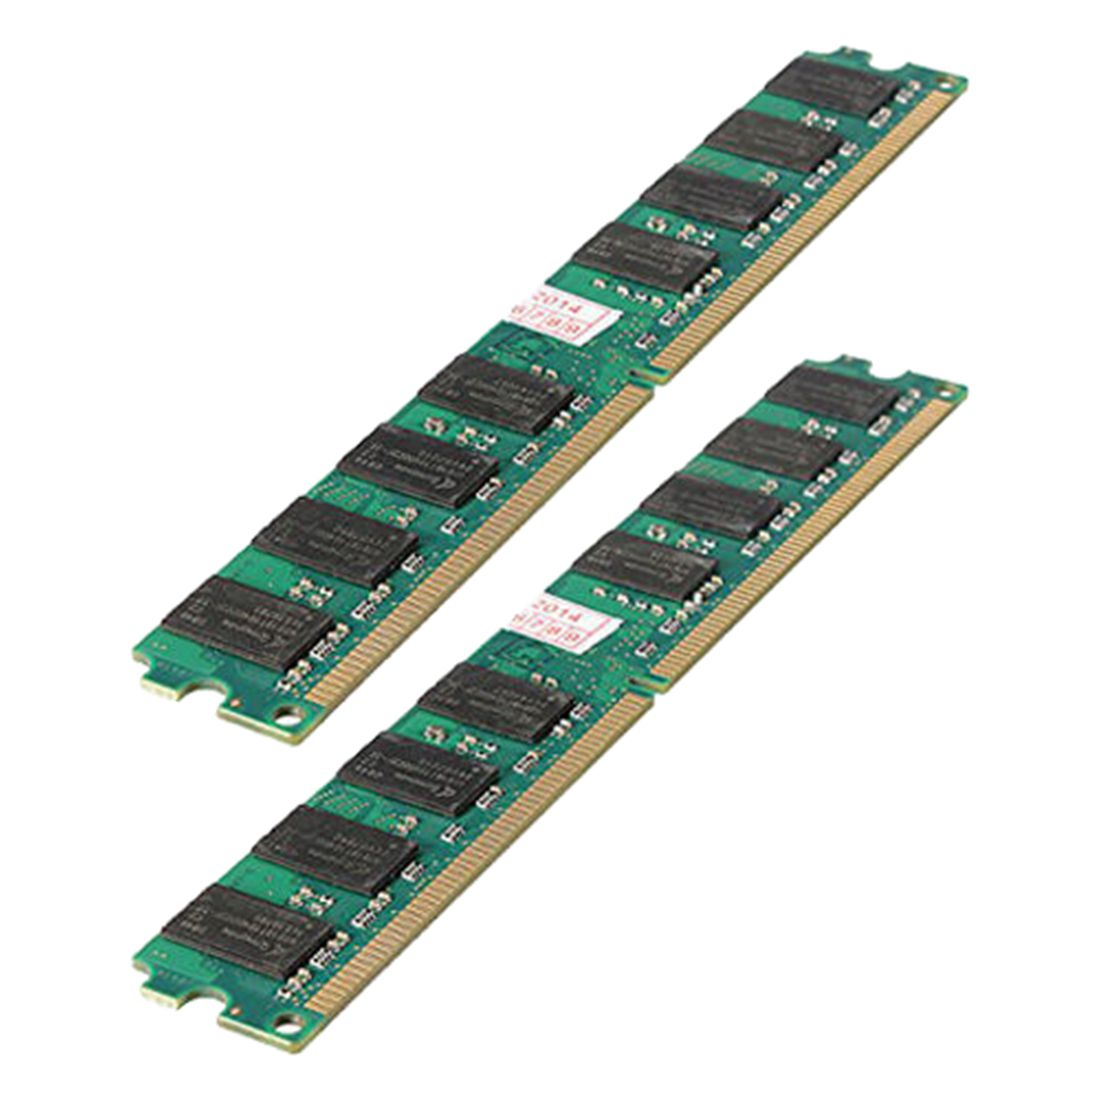 <font><b>4GB</b></font>(2X2 Gb)MEMORIA MEMORY RAM PC2 5300 <font><b>667Mhz</b></font> <font><b>DDR2</b></font> 240PINES FOR AMD PC HIGH DENSITY,green image